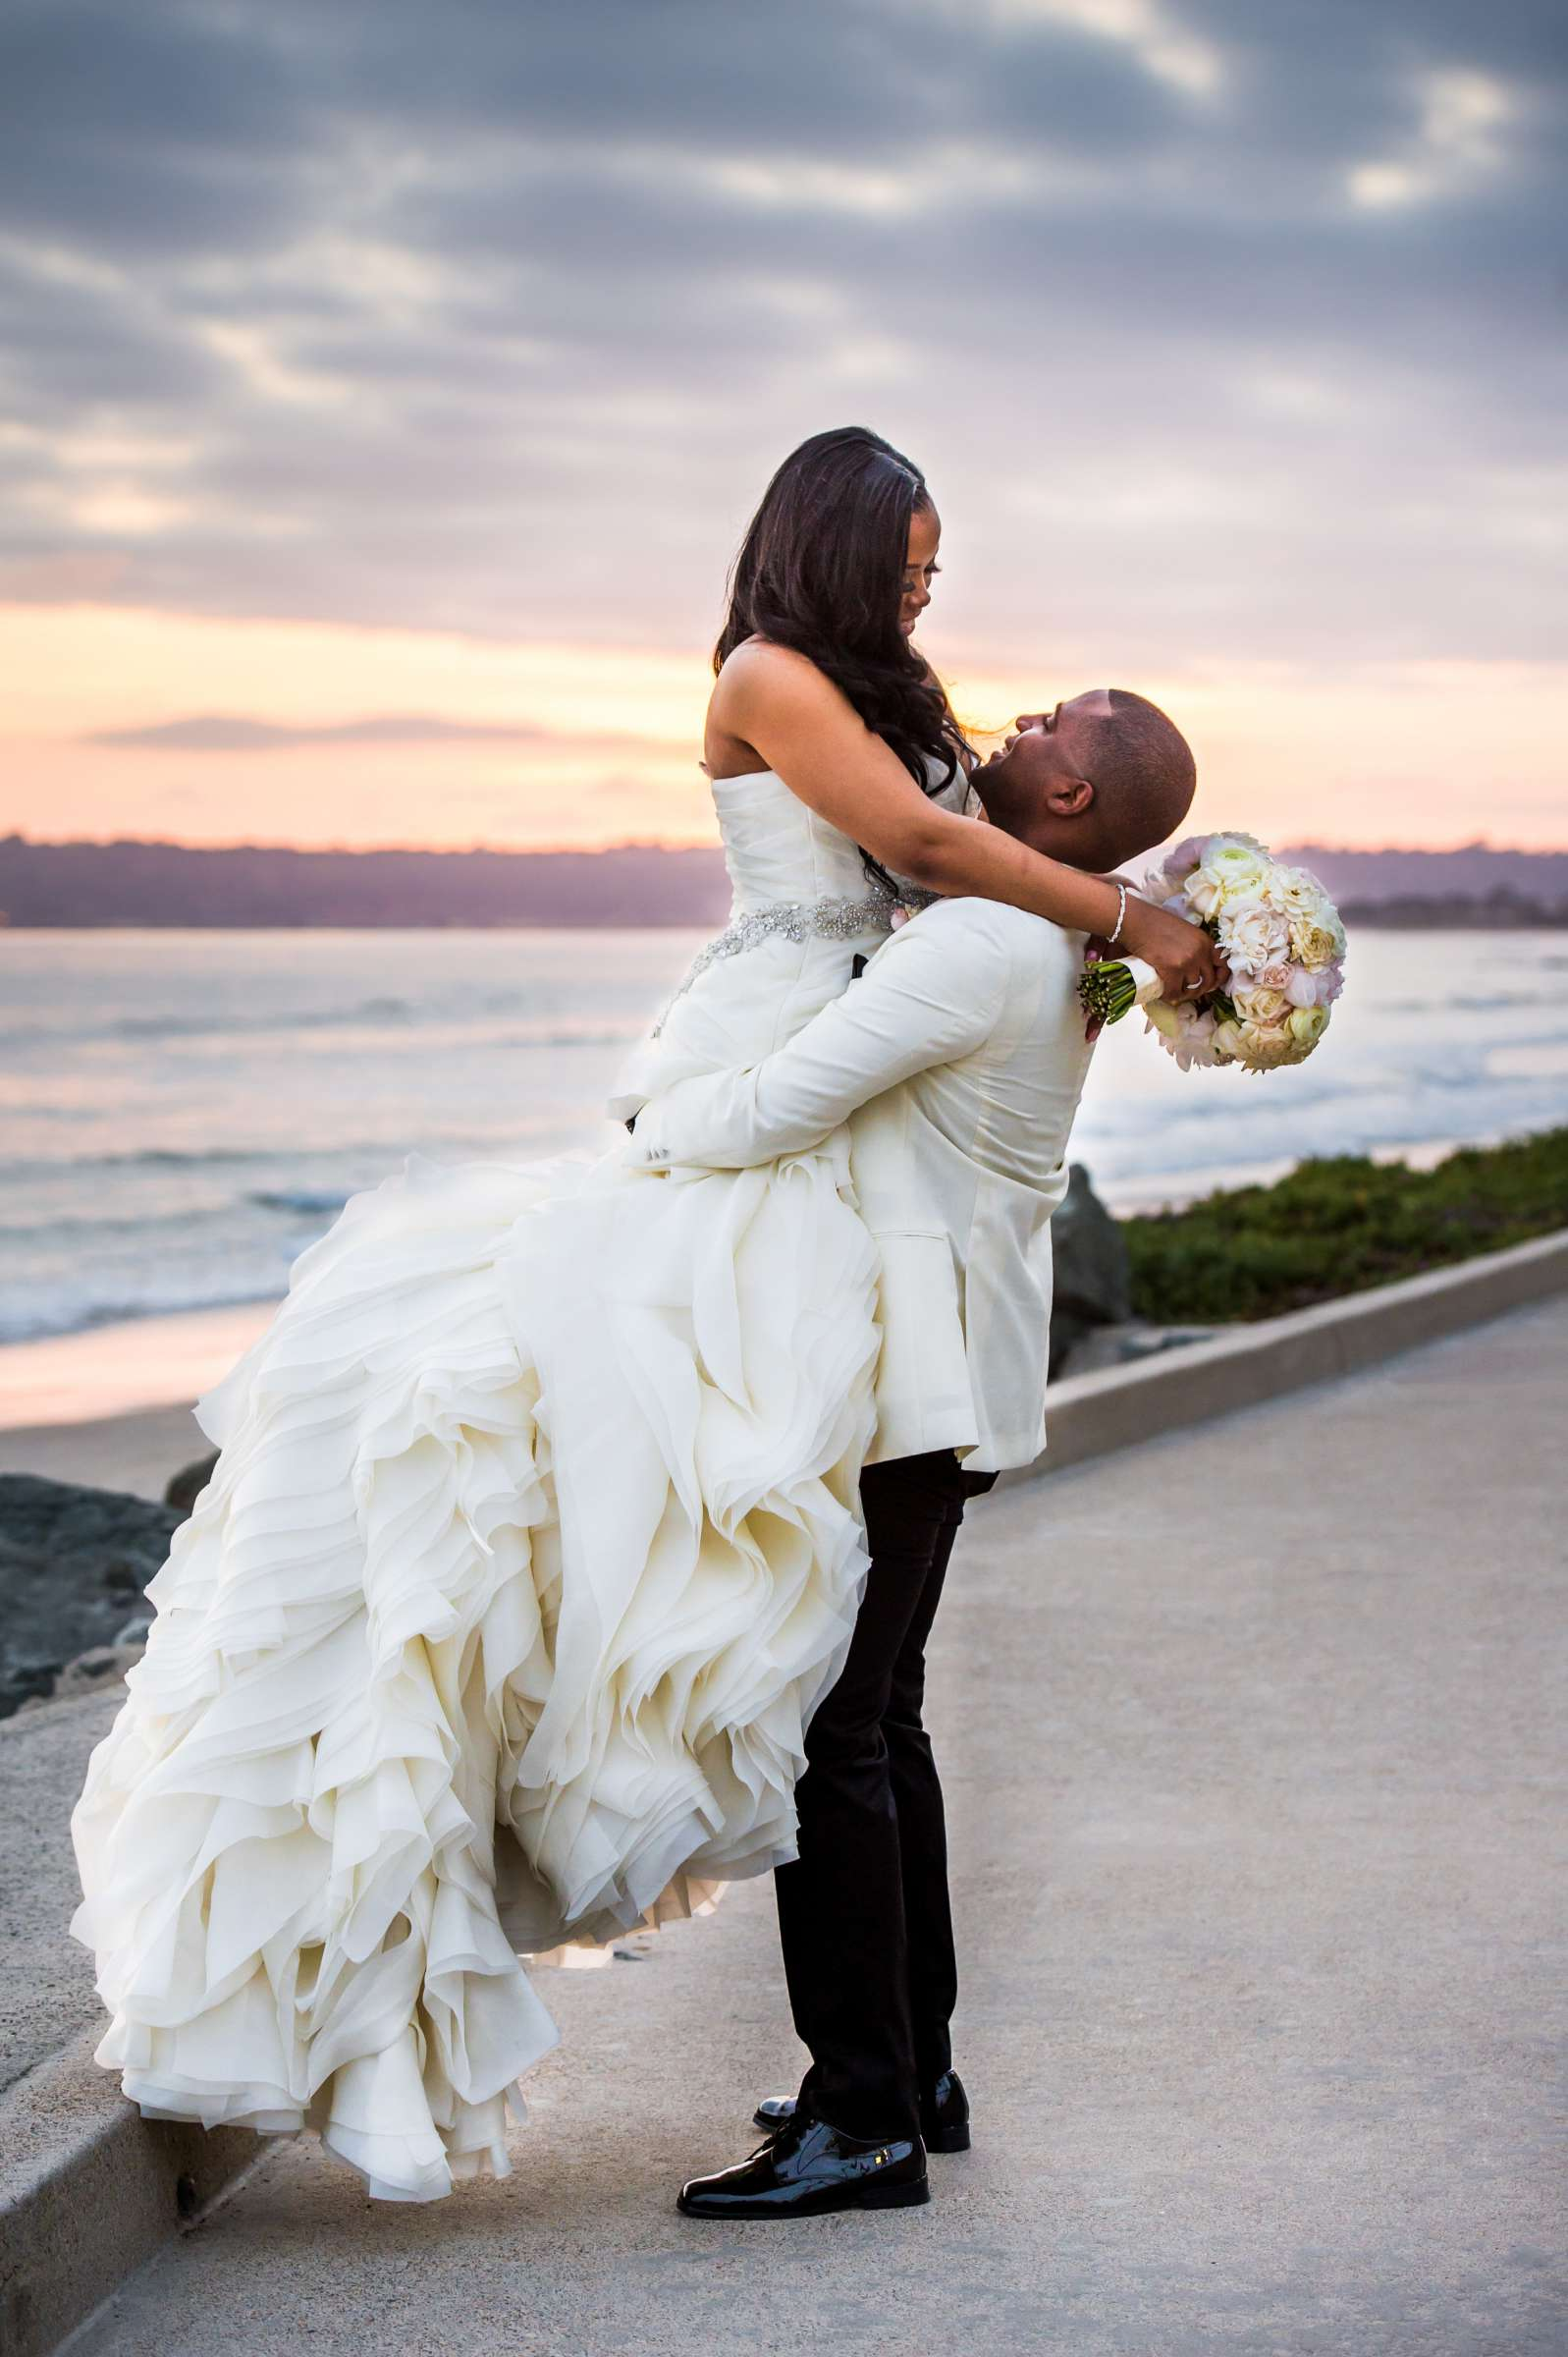 Sunset, Romantic moment, Bride and Groom at Coronado Community Center Wedding coordinated by First Comes Love Weddings & Events, Nikia and Charles Wedding Photo #95 by True Photography